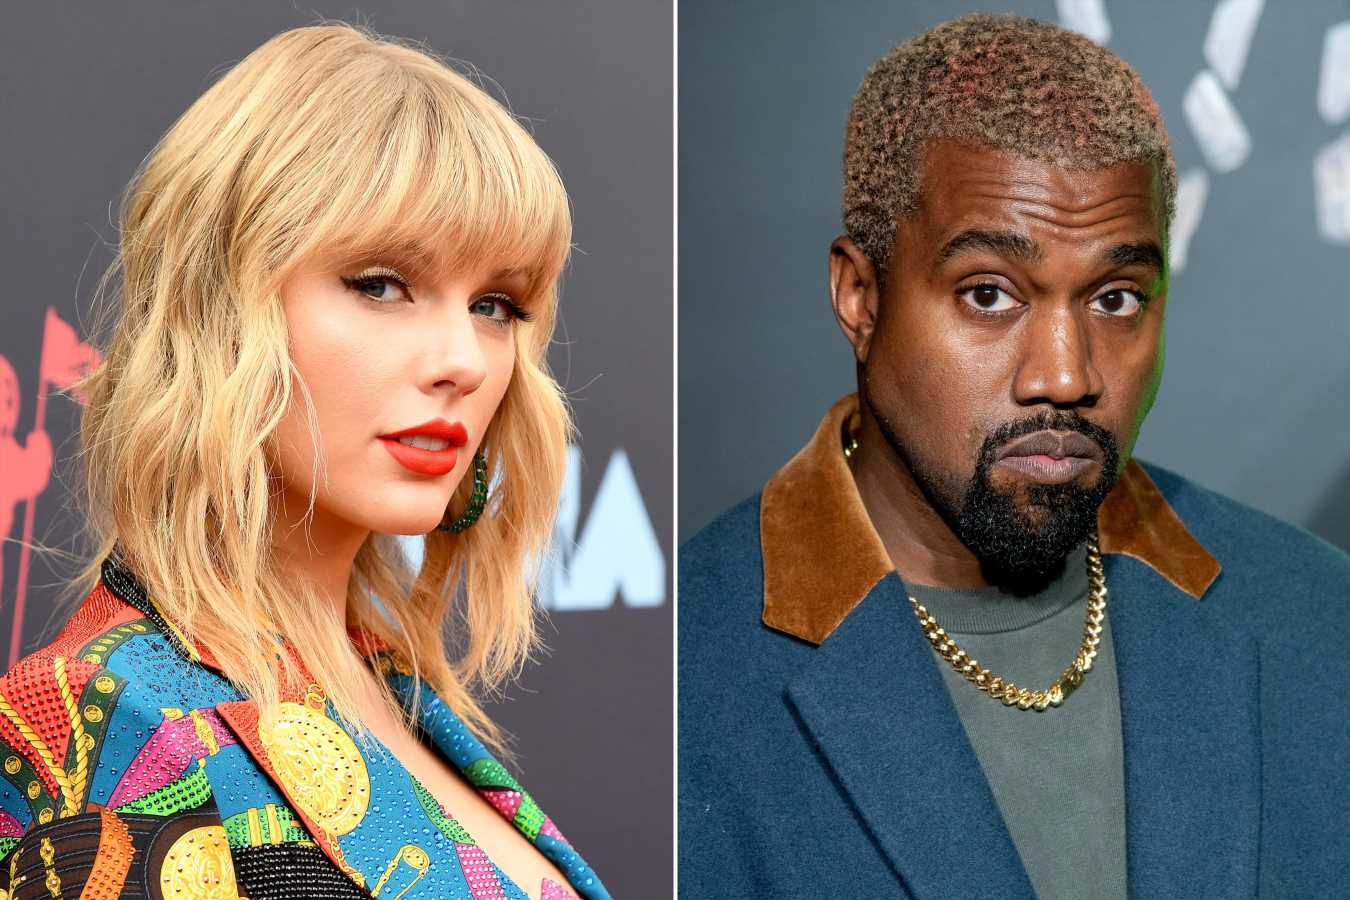 Taylor Swift talks Kanye West, phone call in Rolling Stone interview